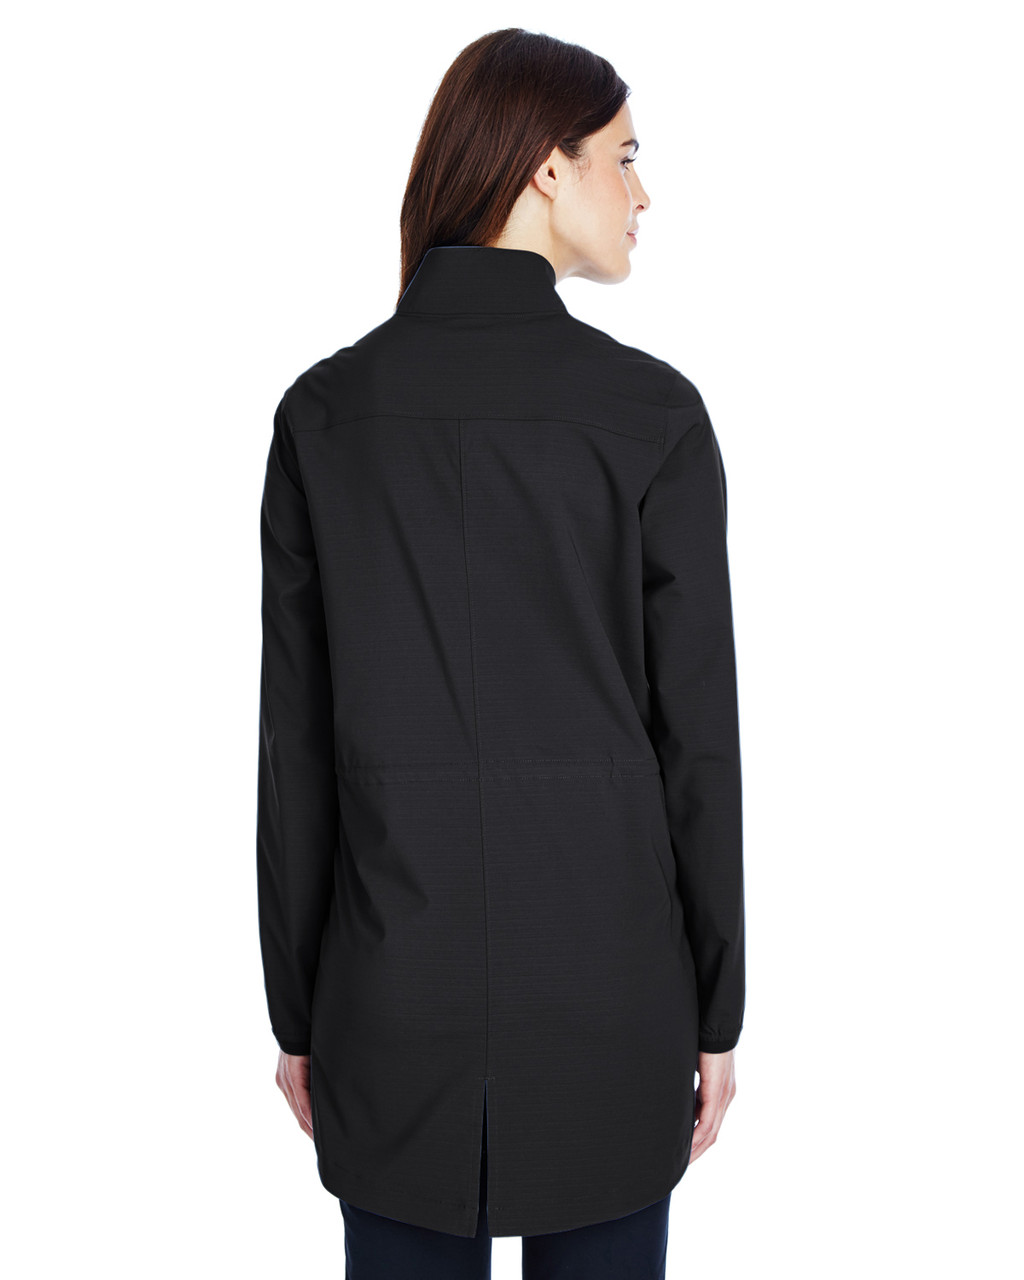 Black/White - Back, 1317222 Under Armour SuperSale Ladies' Corporate Windstrike Jacket | BlankClothing.ca